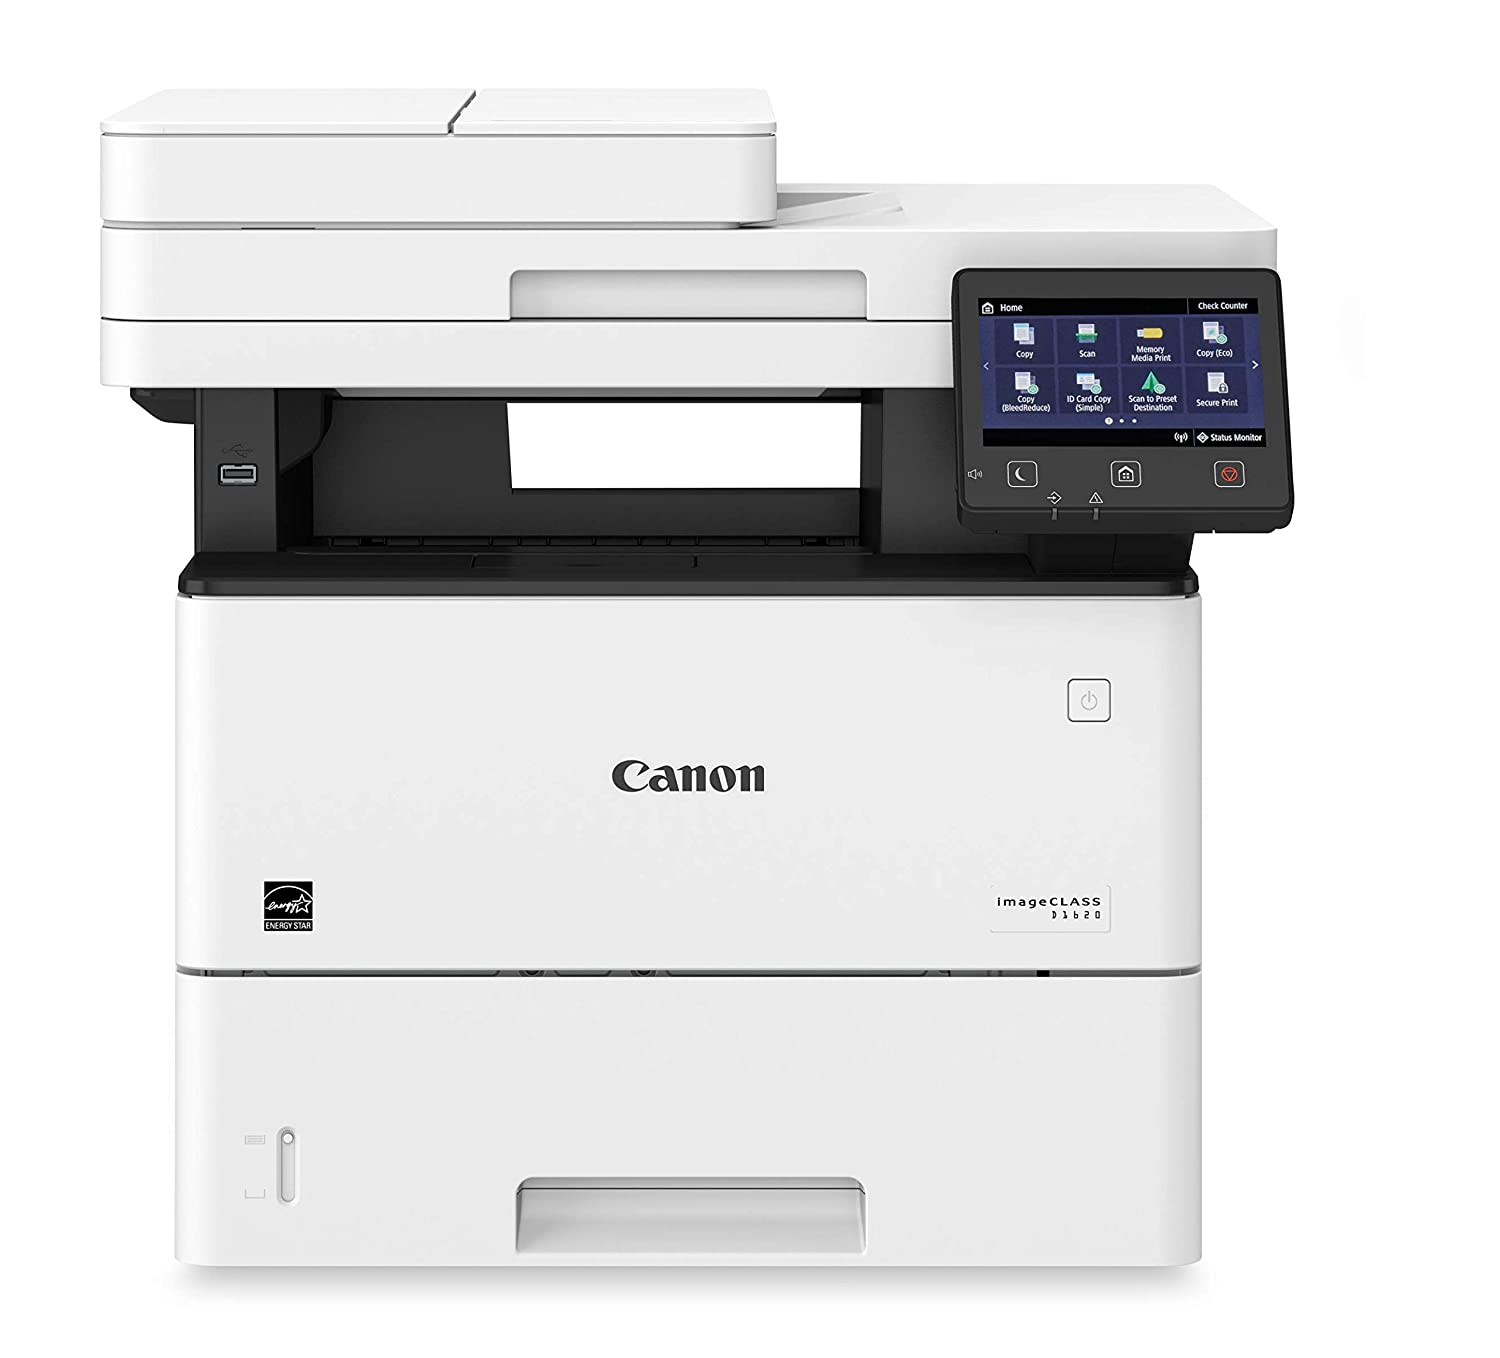 Canon imageCLASS D1620 (2223C024) Multifunction, Wireless Laser Printer with AirPrint, 45 Pages Per Minute and 3 Year Warranty